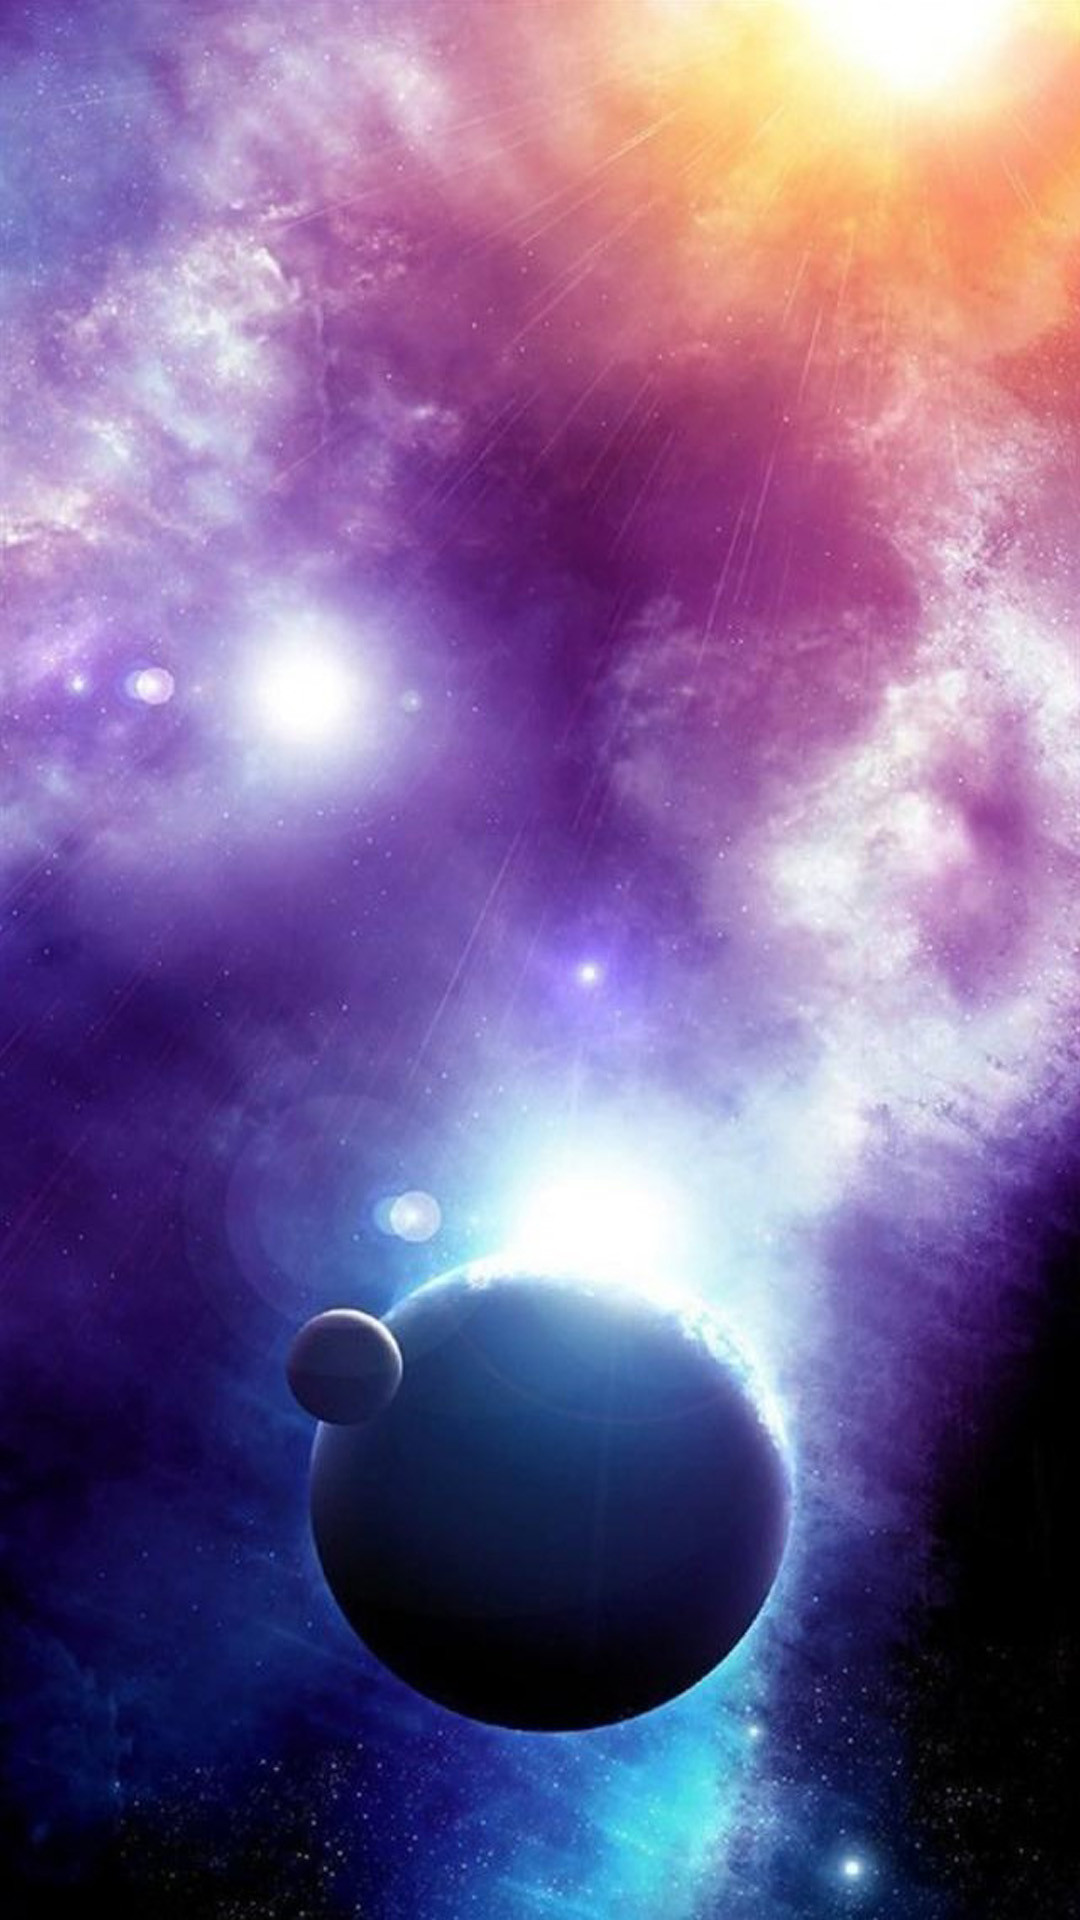 Iphone 6 space wallpaper hd 77 images 1080x1920 iphone space pictures windows wallpapers hd download free background images mac windows 10 tablet 1080x1920 voltagebd Images